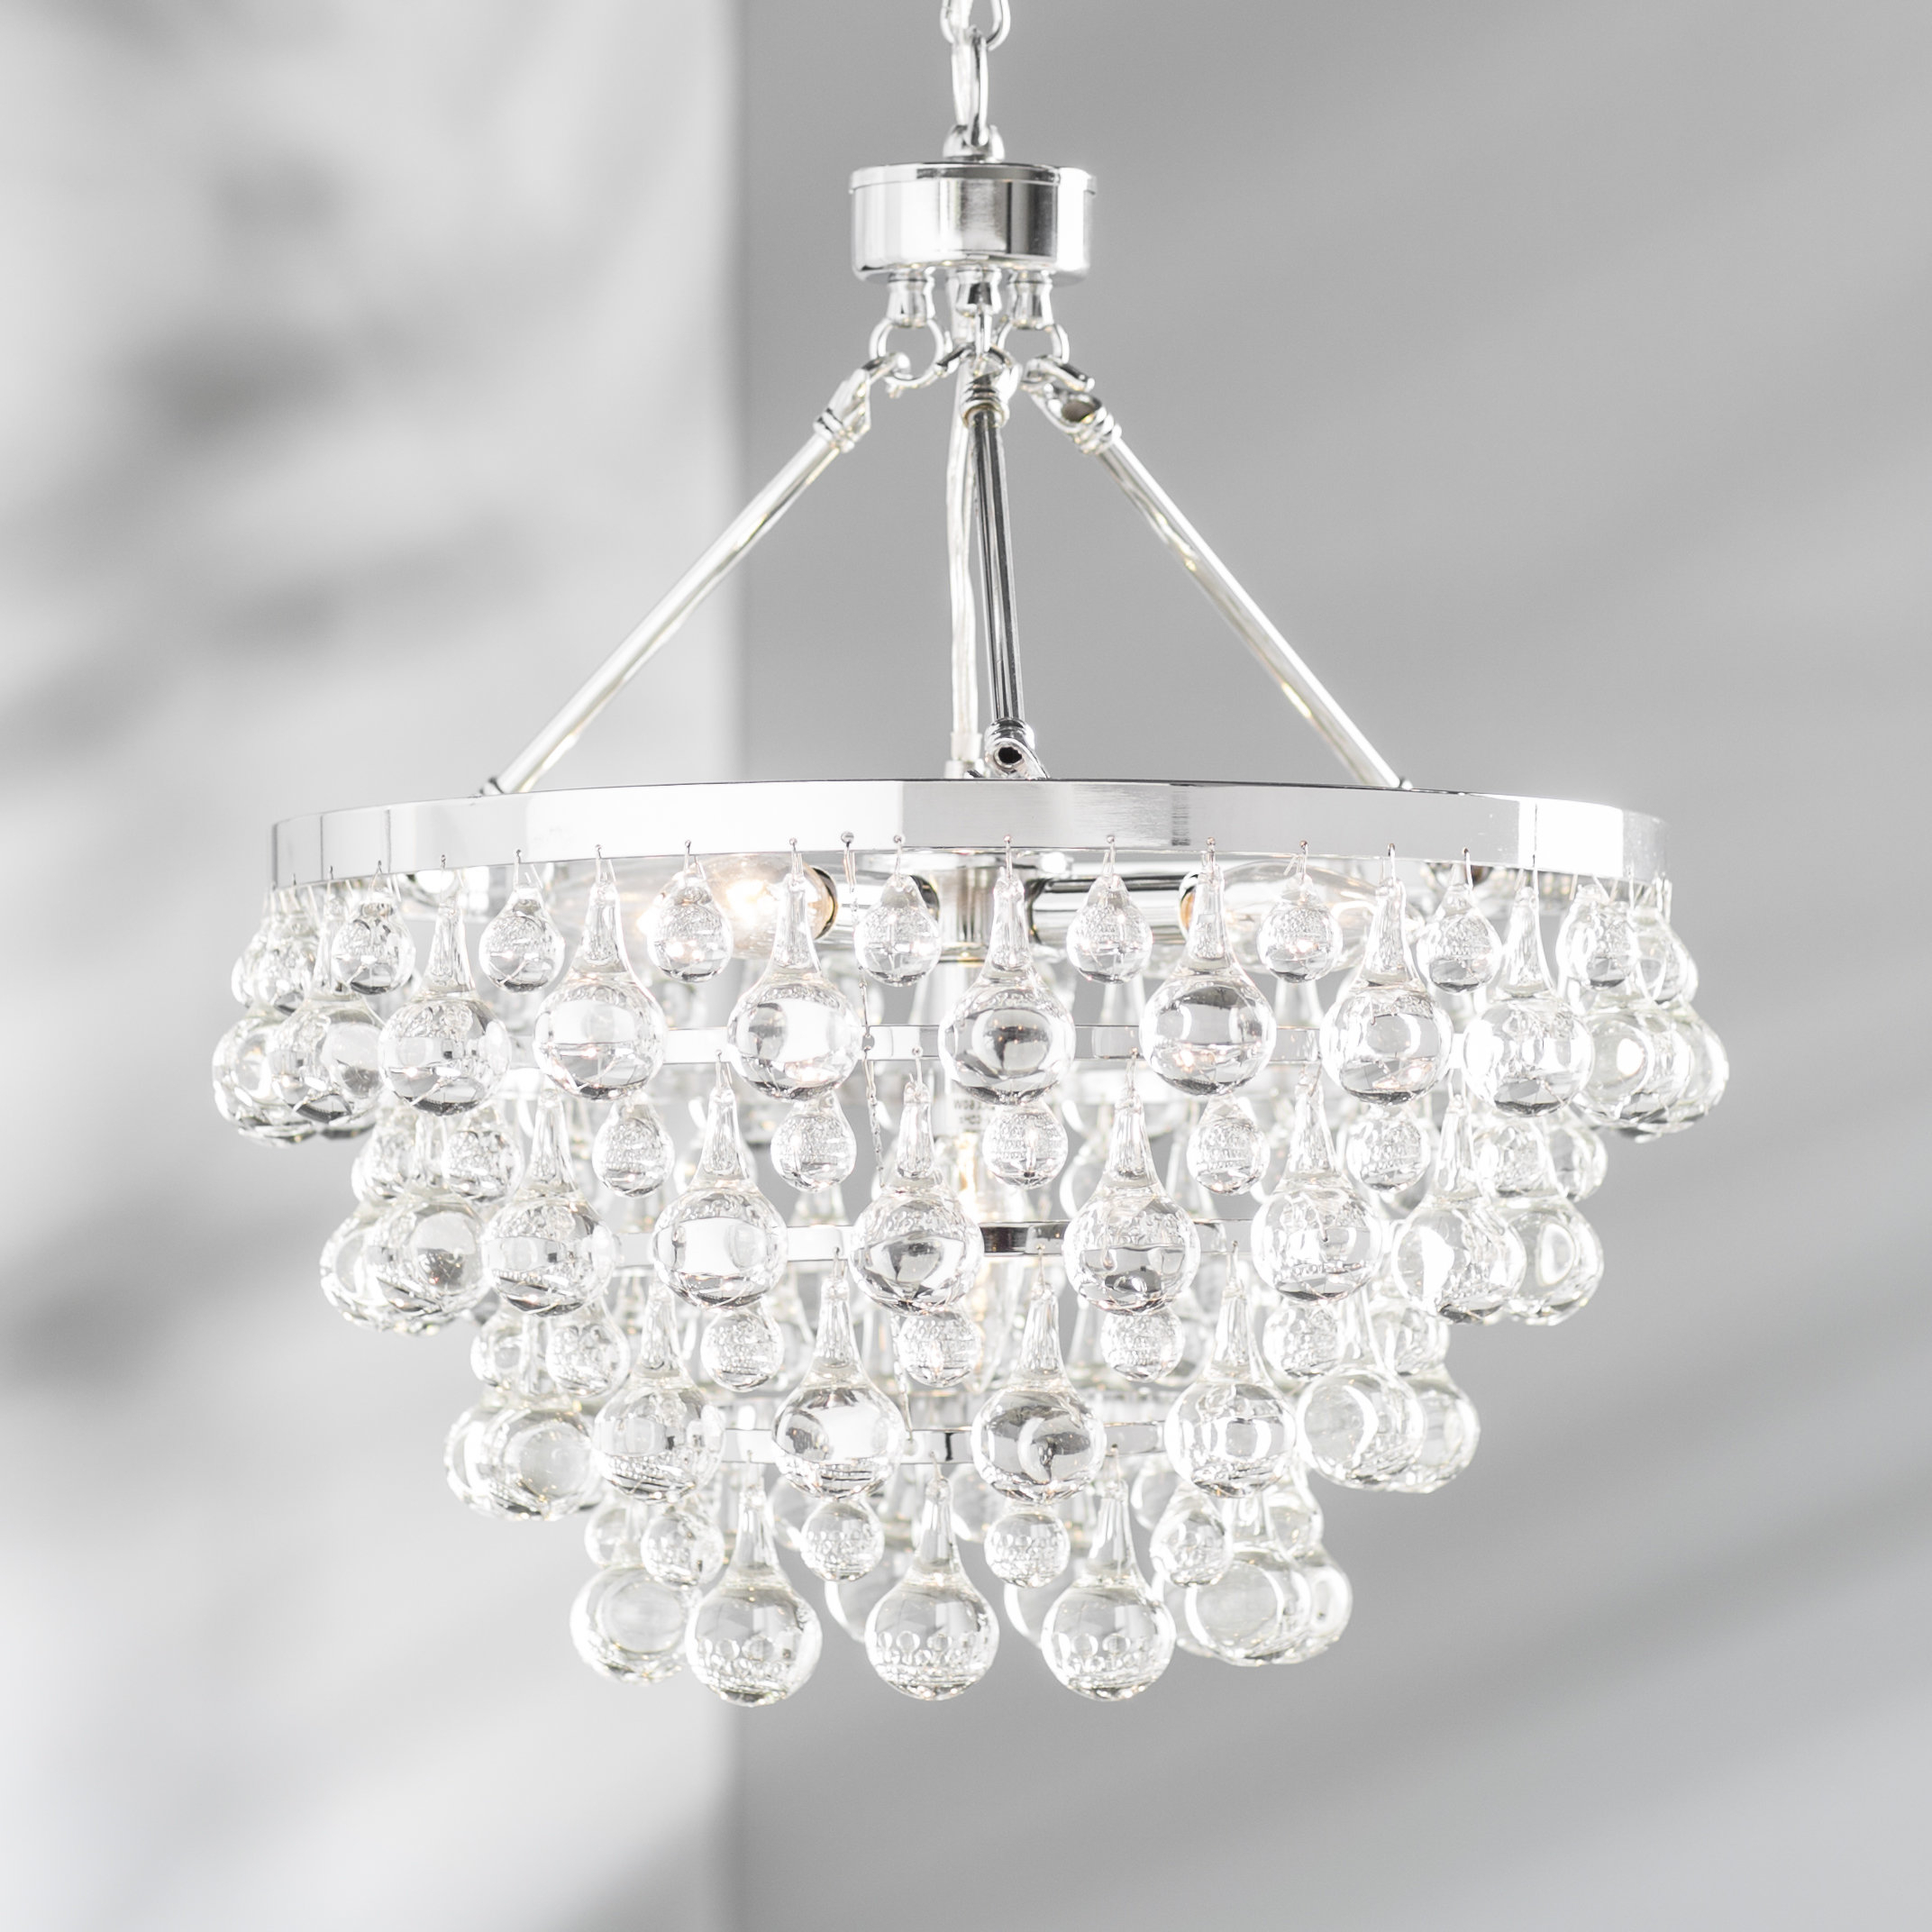 Verdell 5 Light Crystal Chandeliers Within Most Recent Ahern 5 Light Crystal Chandelier (View 6 of 20)